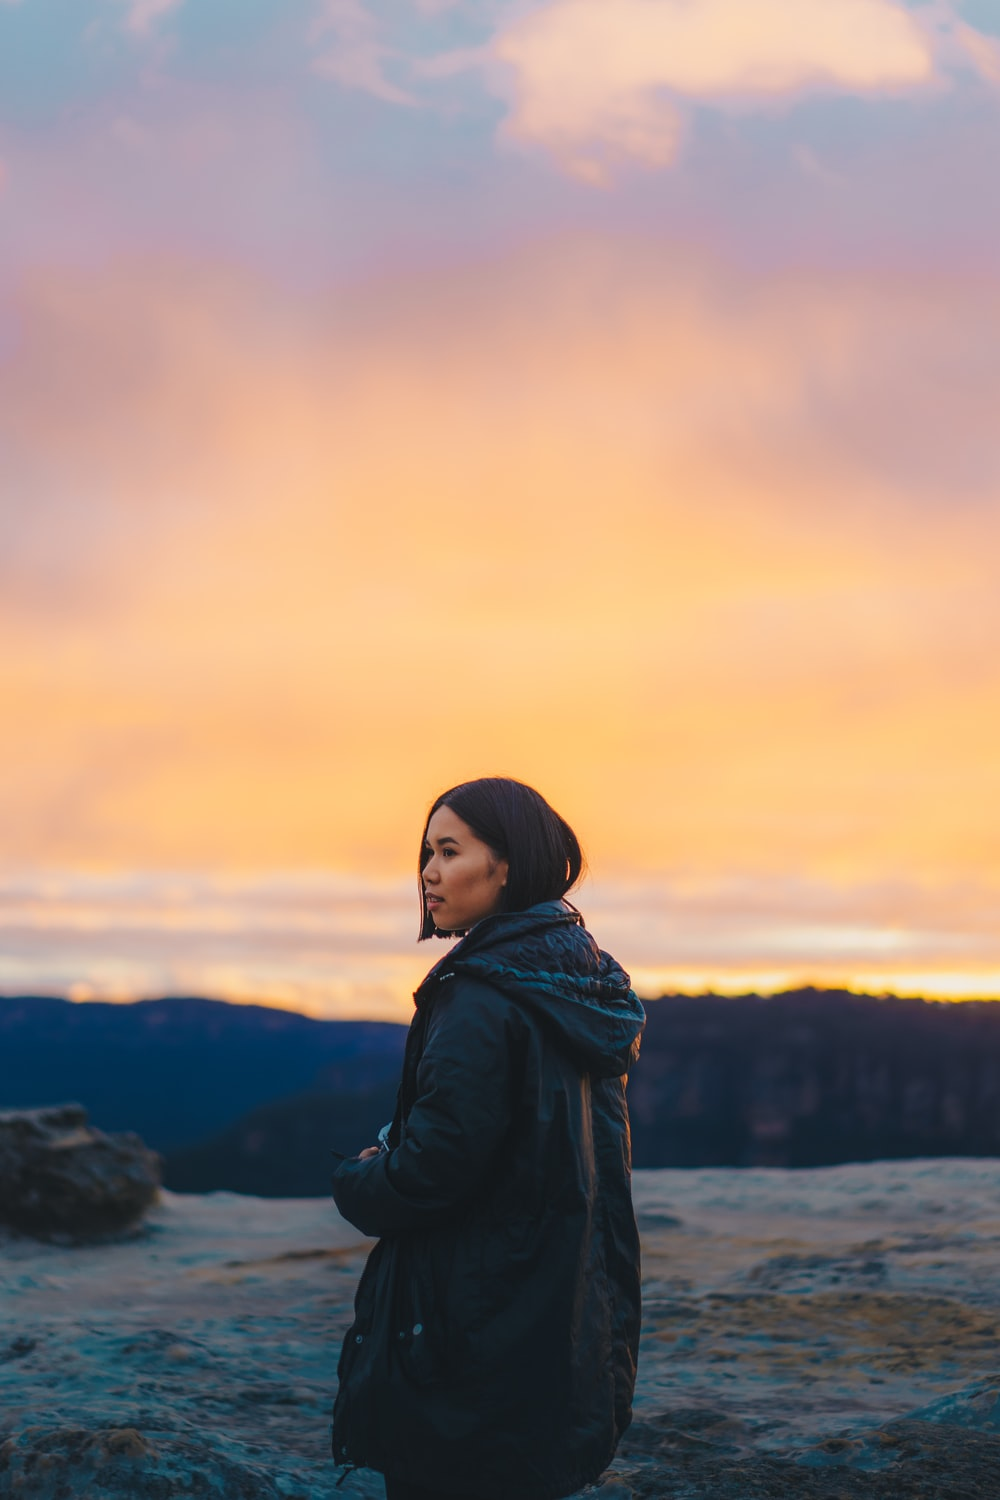 woman in black jacket standing on hill during daytime